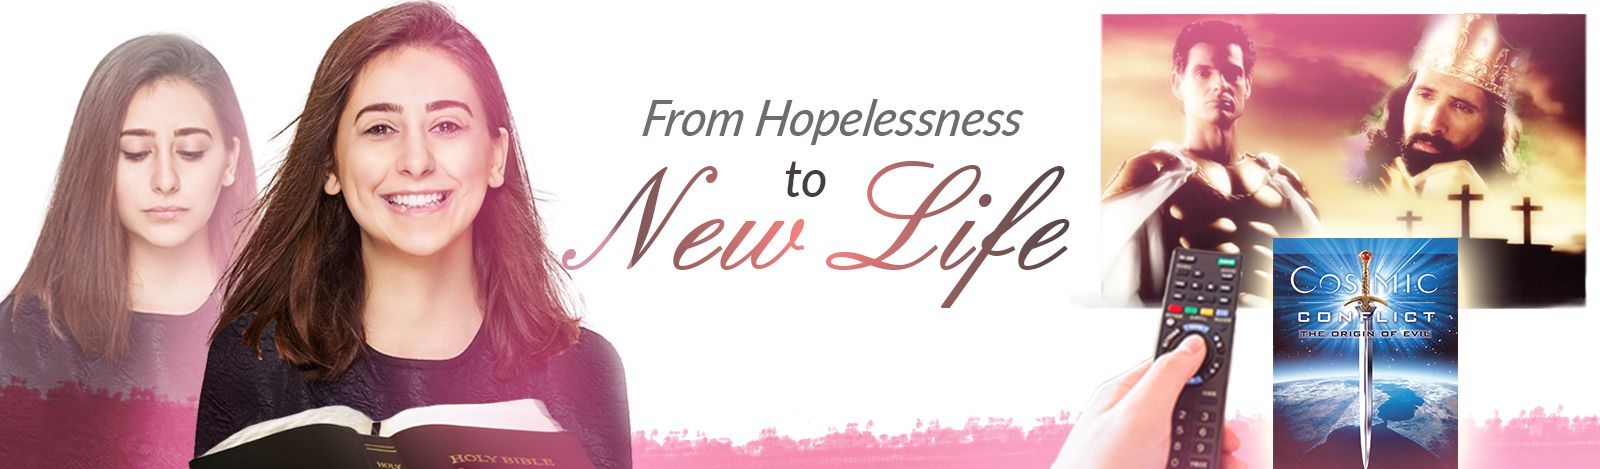 From Hopelessness to New Life!